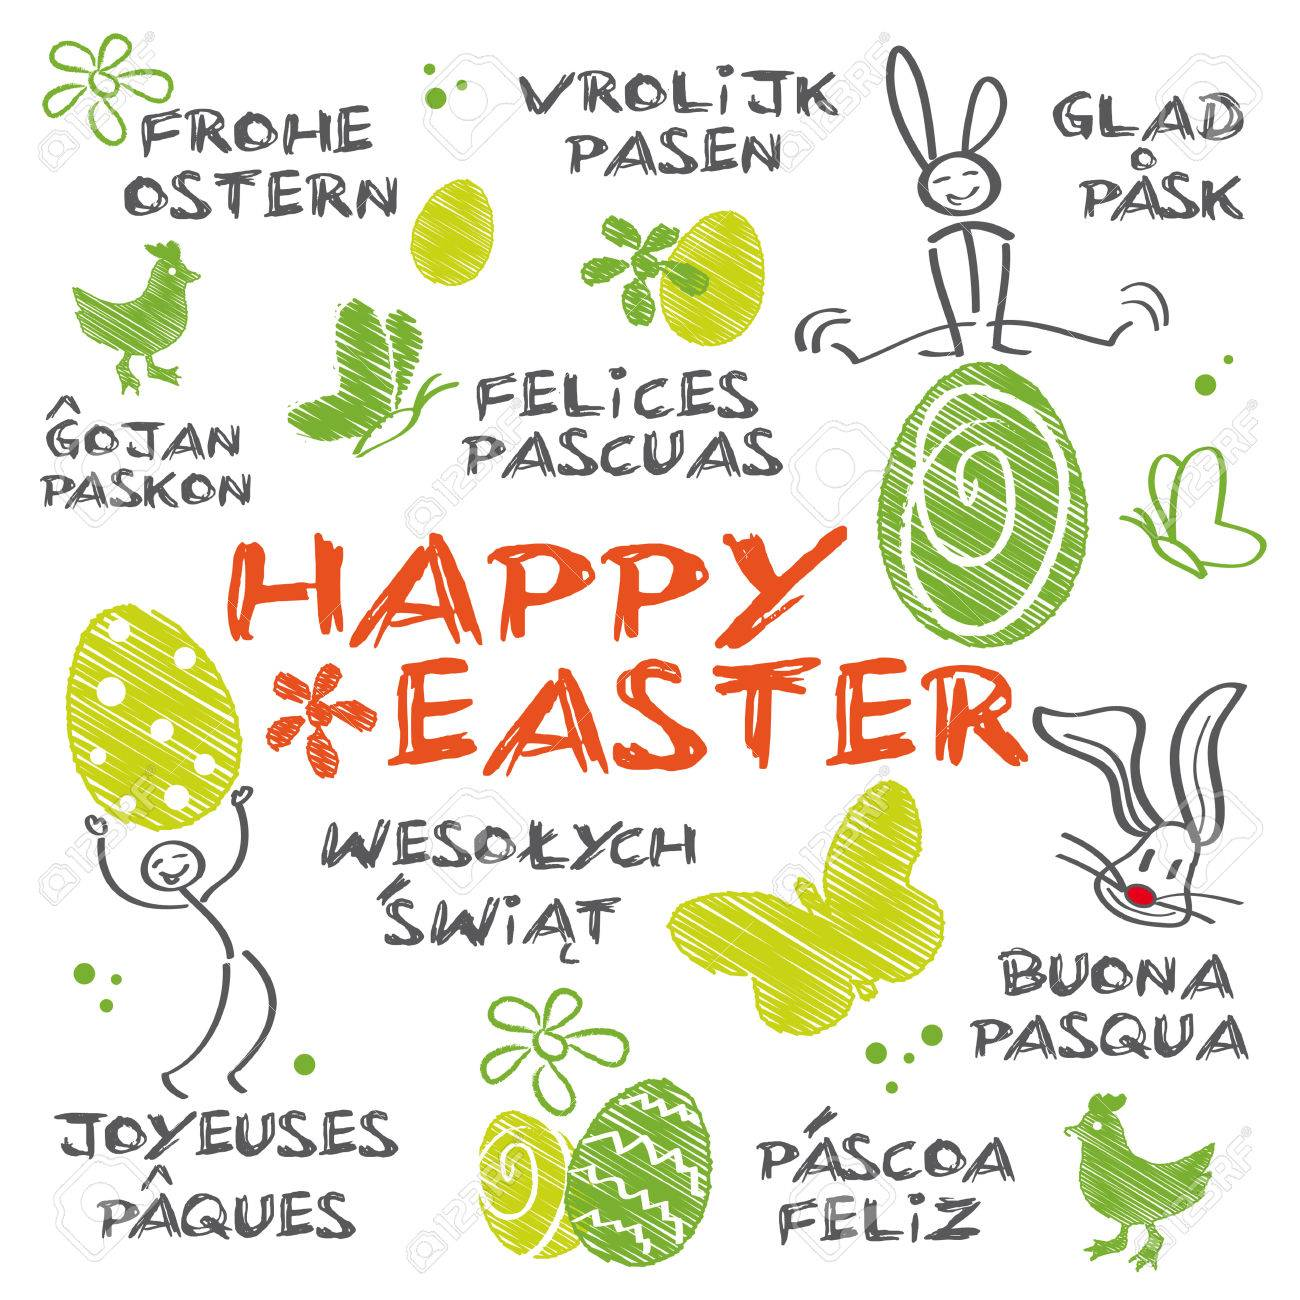 Illustrated Easter Greetings In Different Languages Royalty Free